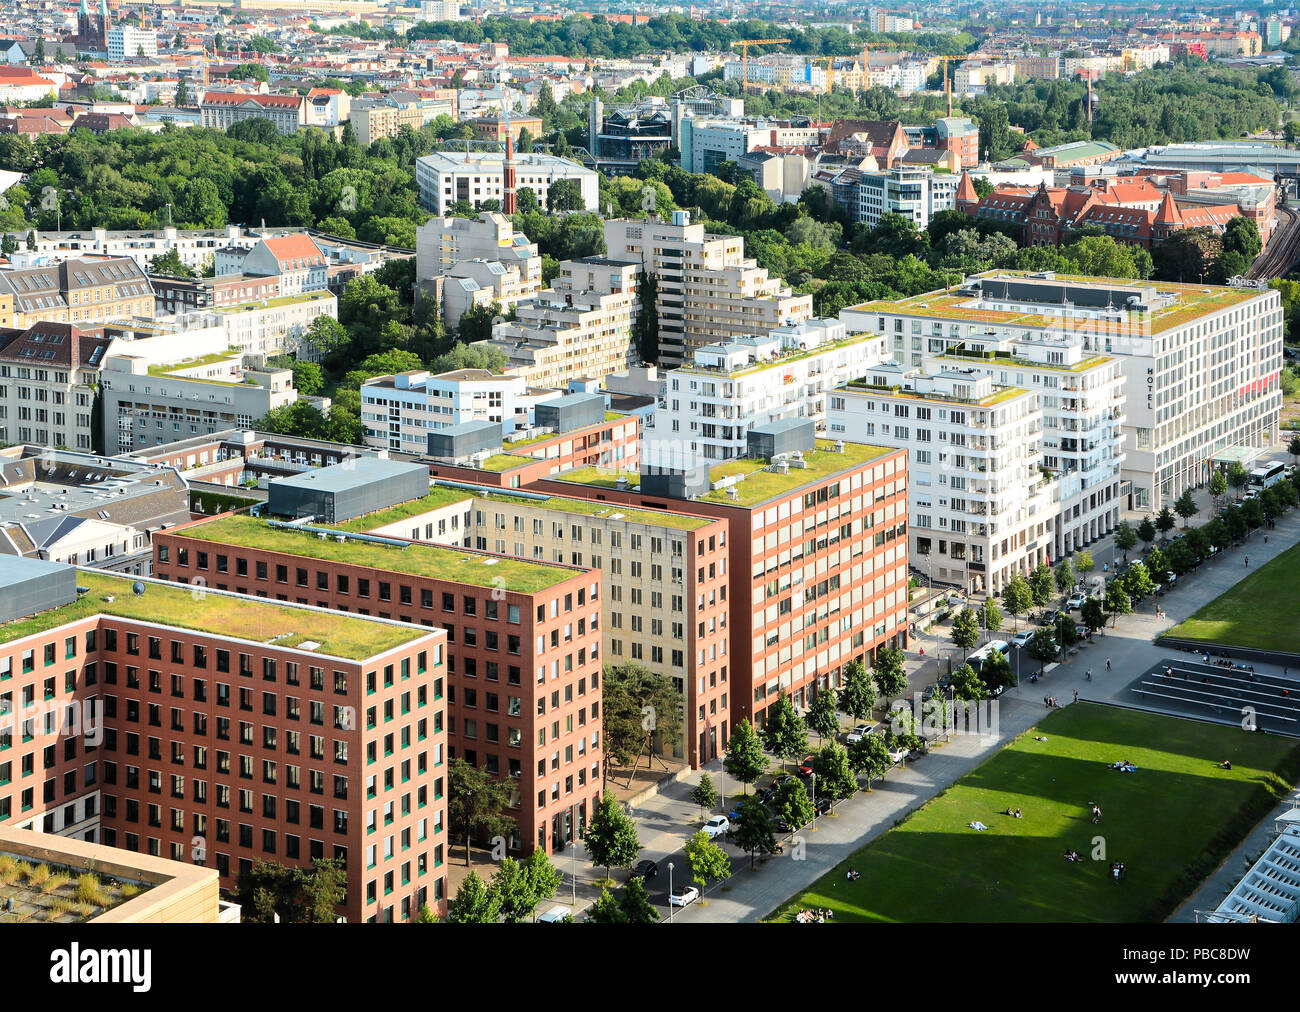 View from a skyscraper in the city center of Berlin - Stock Image